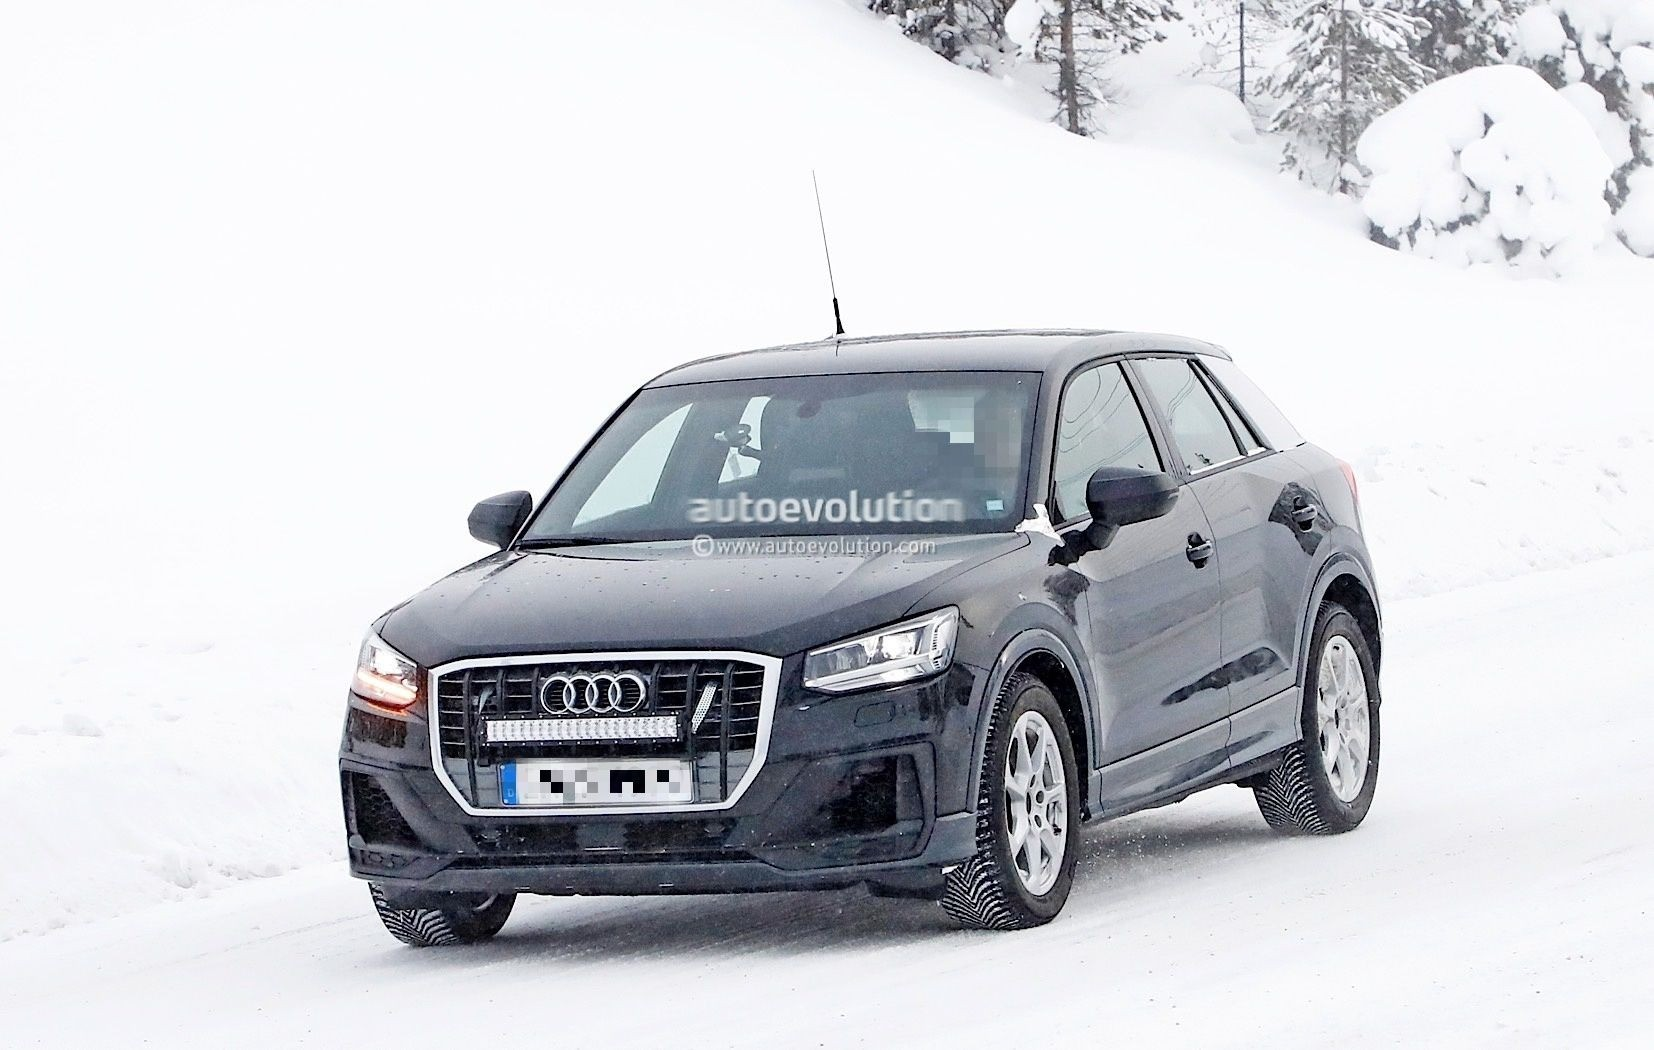 Spyshots: Undisguised 2019 Audi SQ2 Has Snow Camo and Four Tailpipes - autoevolution